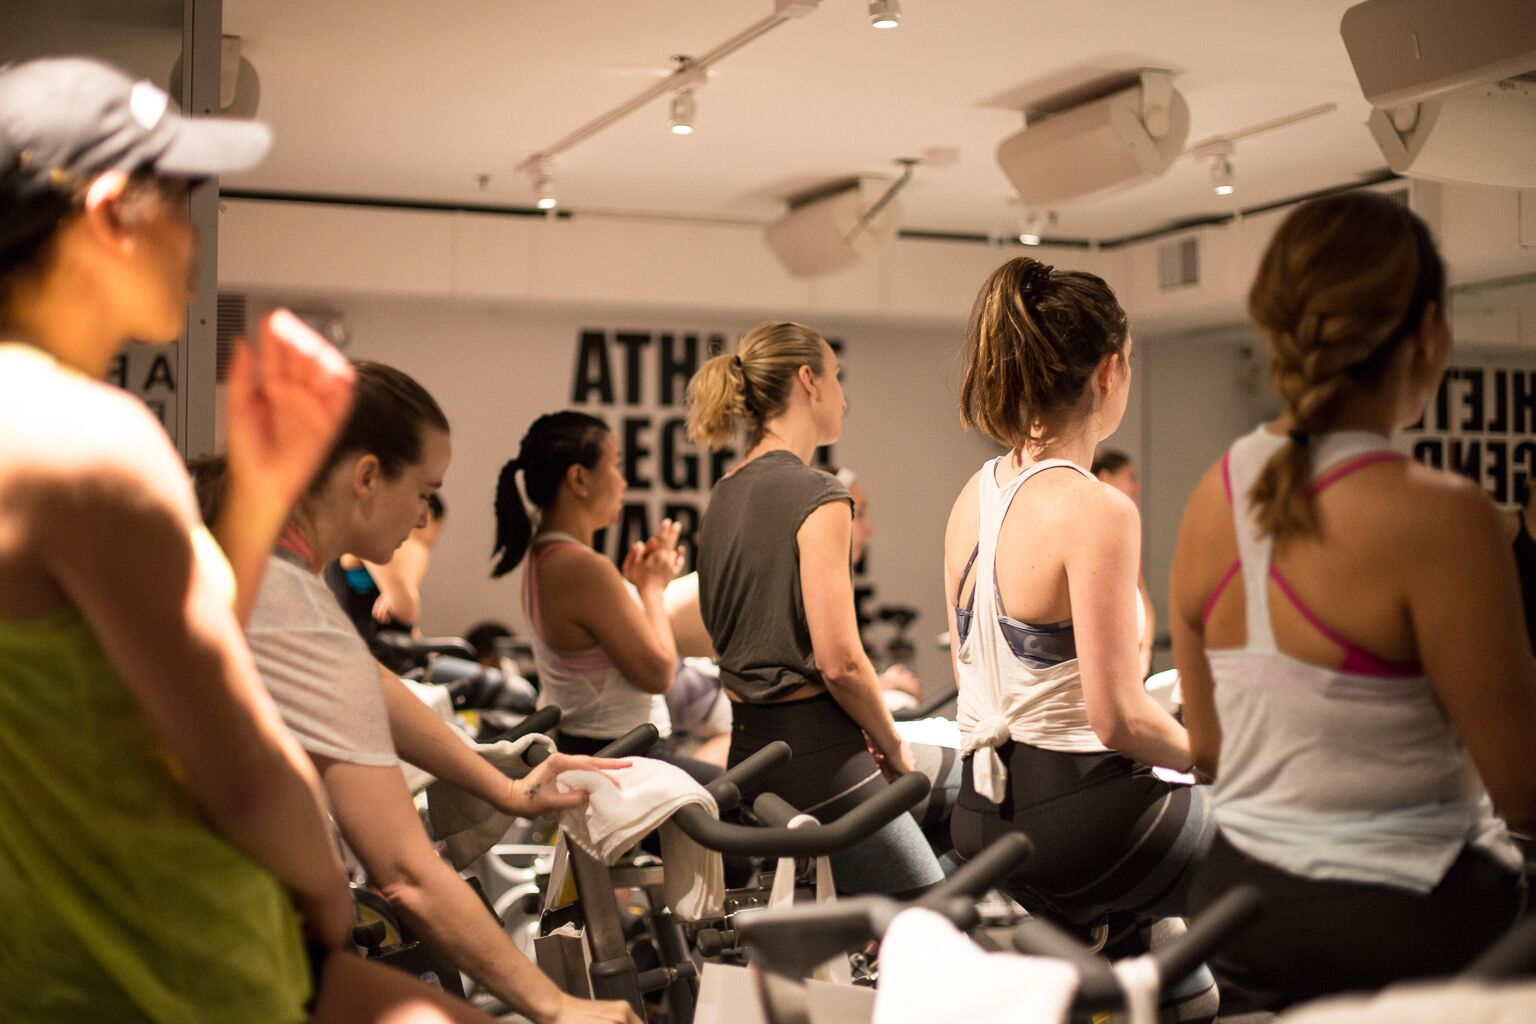 HM-SoulCycle-Charity-Ride-EDIT-29